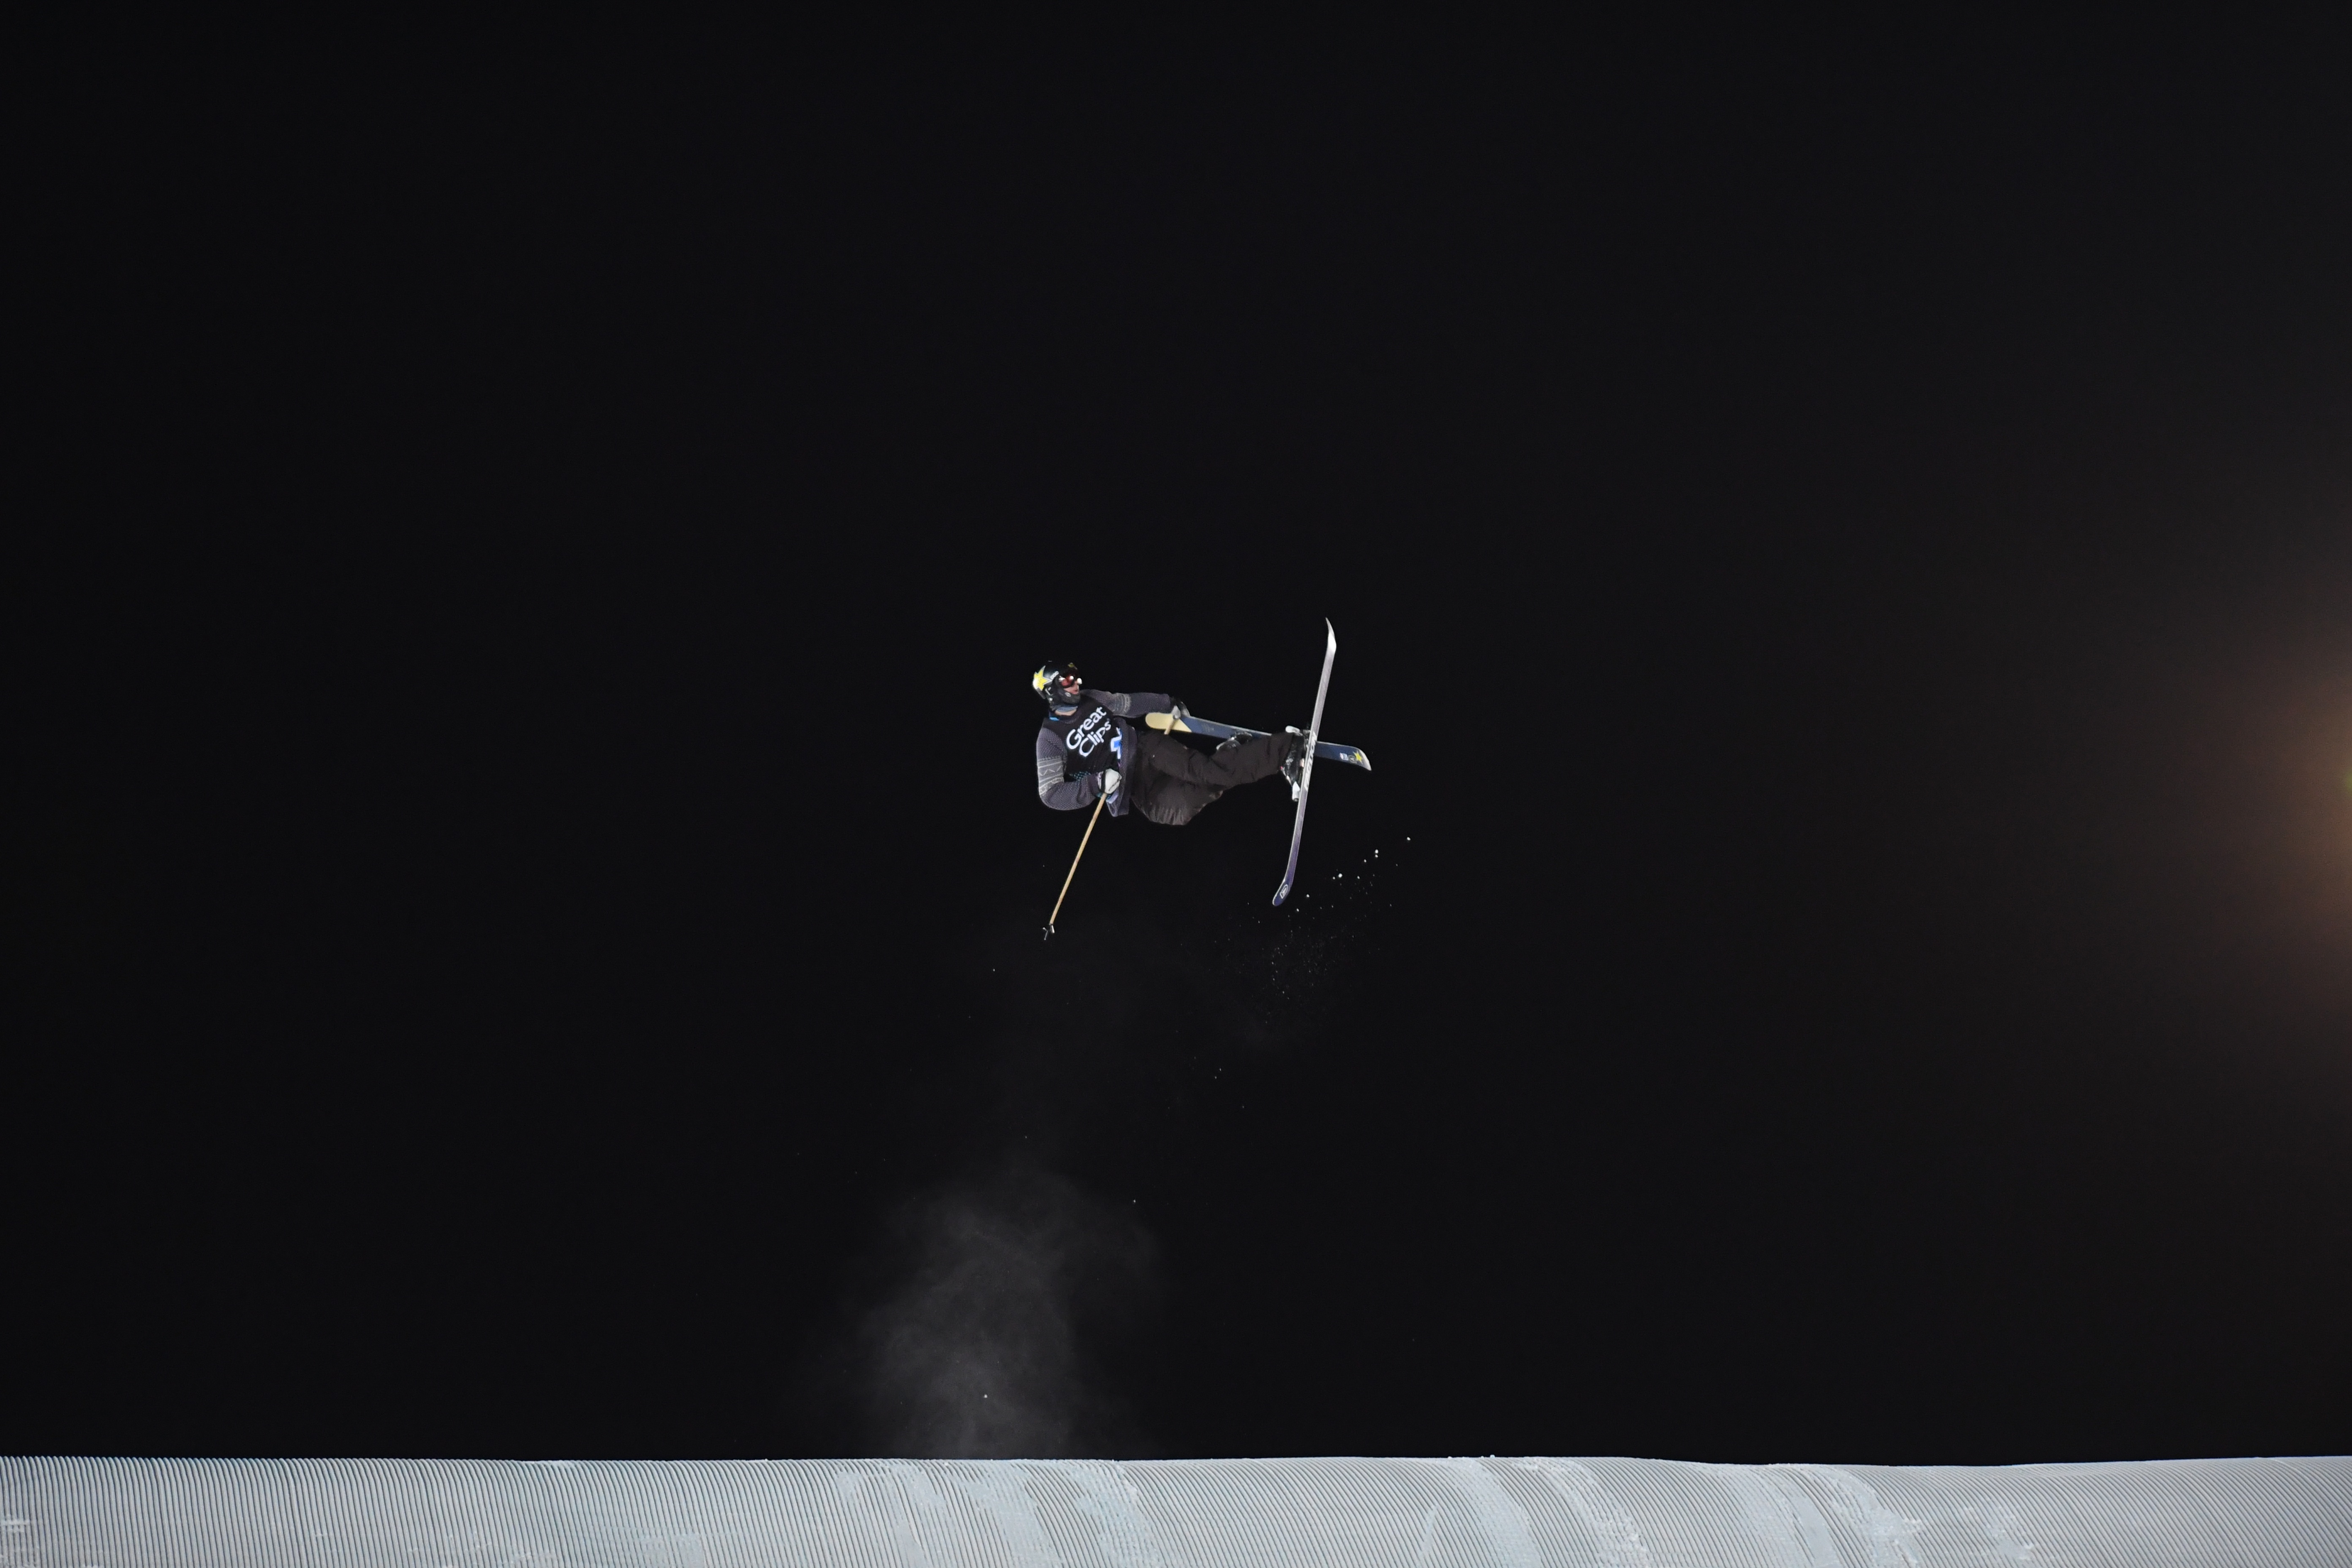 Alex Hall at the 2019 Aspen X Games